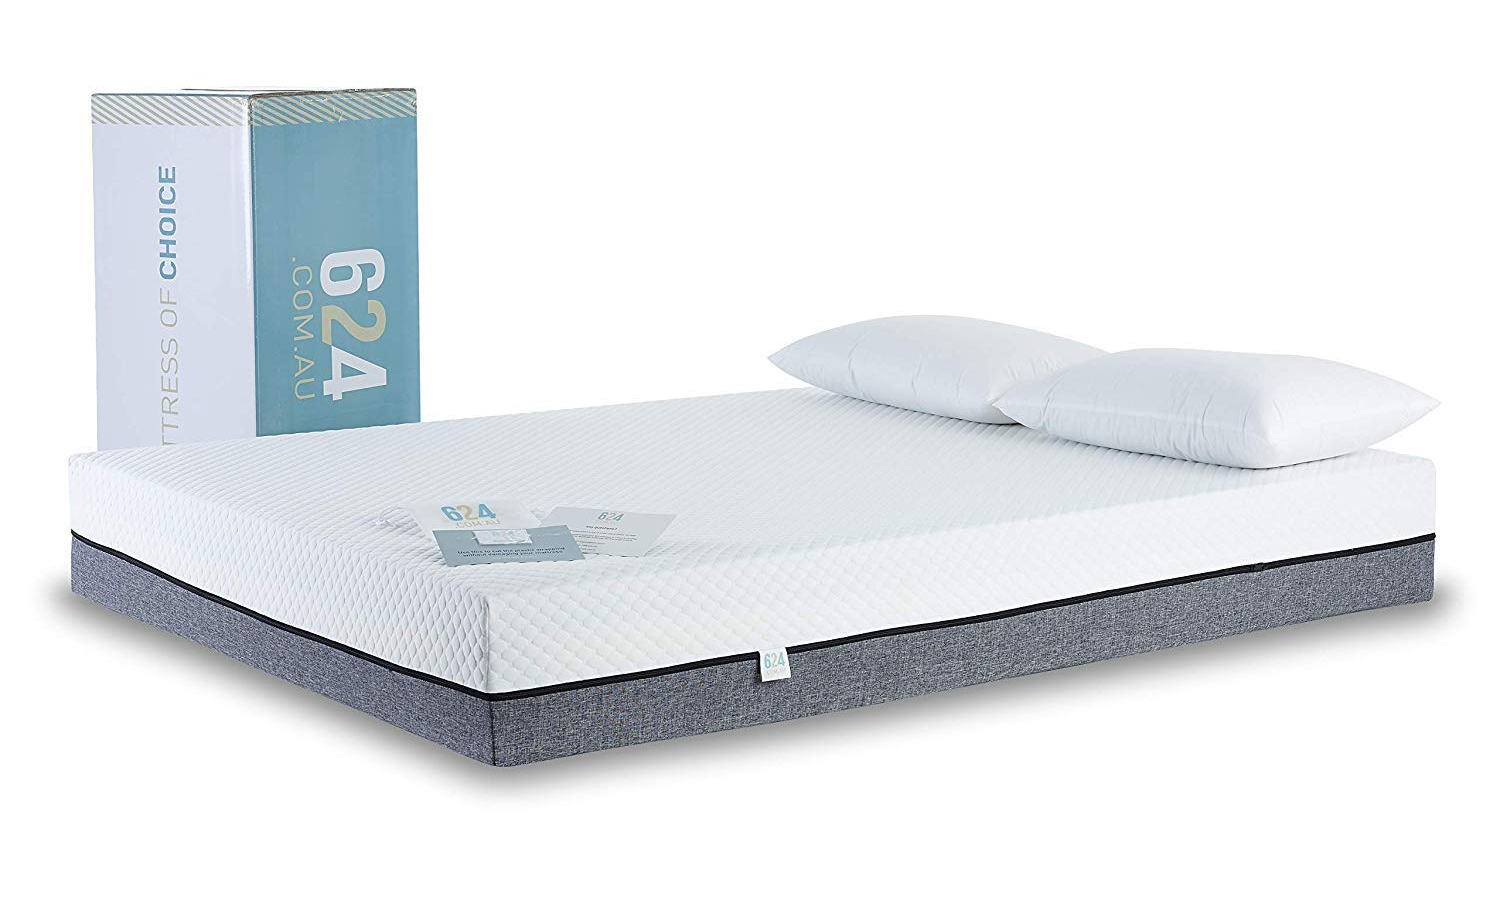 624 mattress review